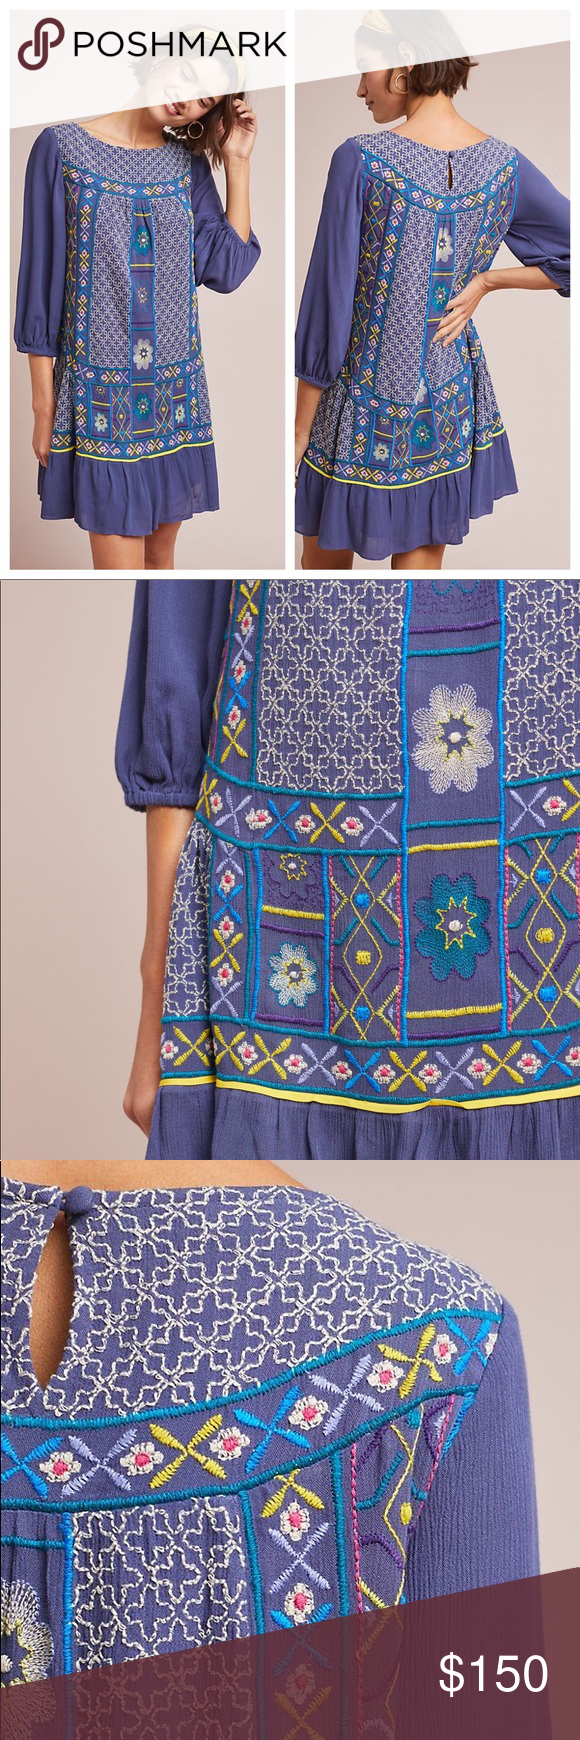 f0eb6de050 Anthropologie Patna Embroidered Tunic Dress Anthropologie Patna Embroidered  Tunic Dress by Akemi Kin Rayon Embroidered detail